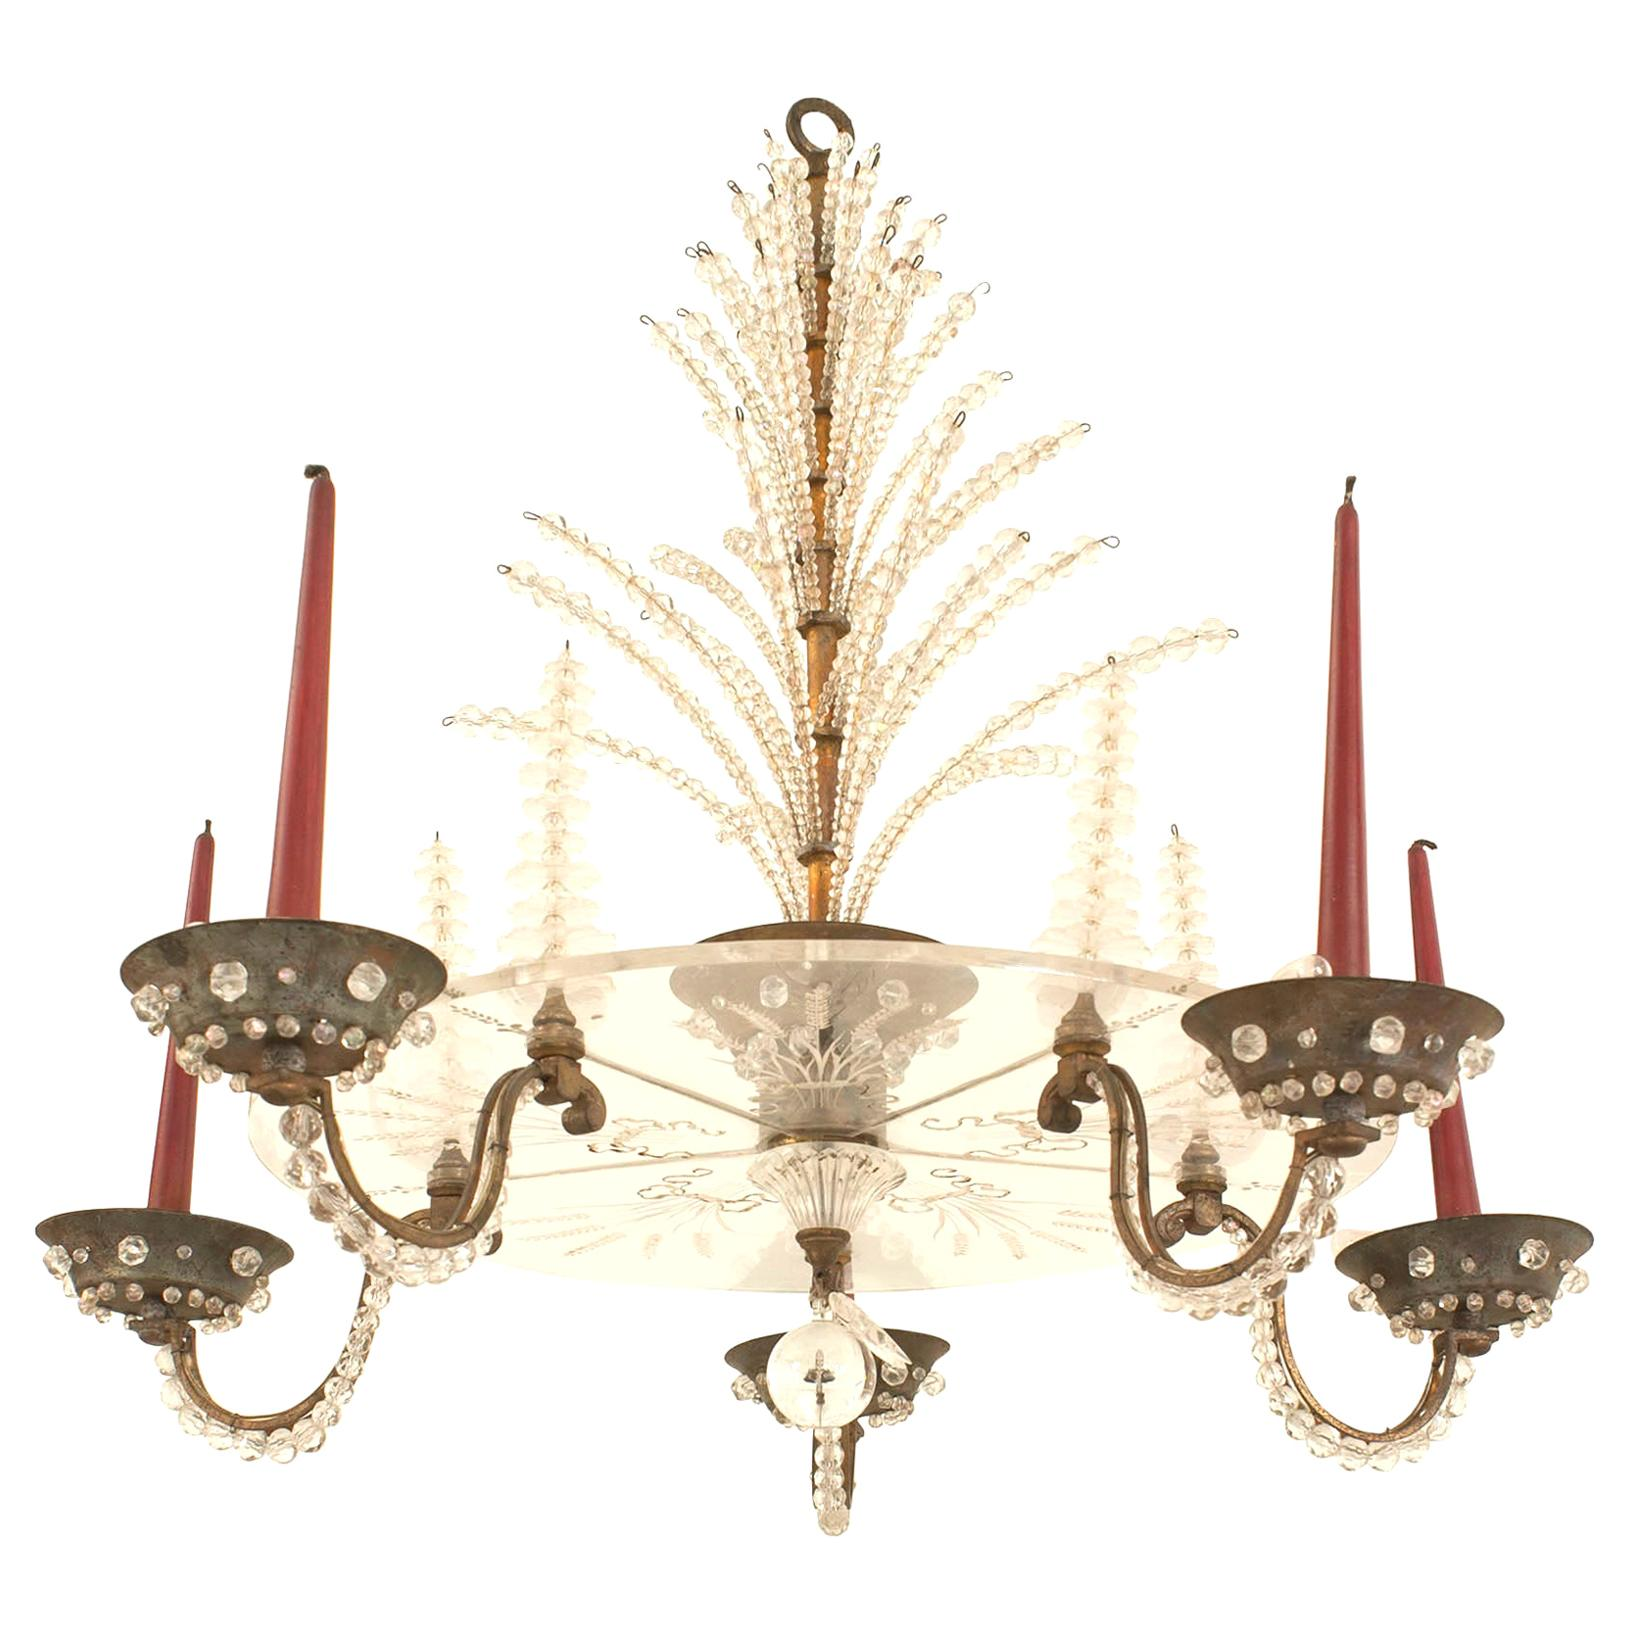 French Mid-Century Attributed to Baguès Bronze and Glass Chandelier